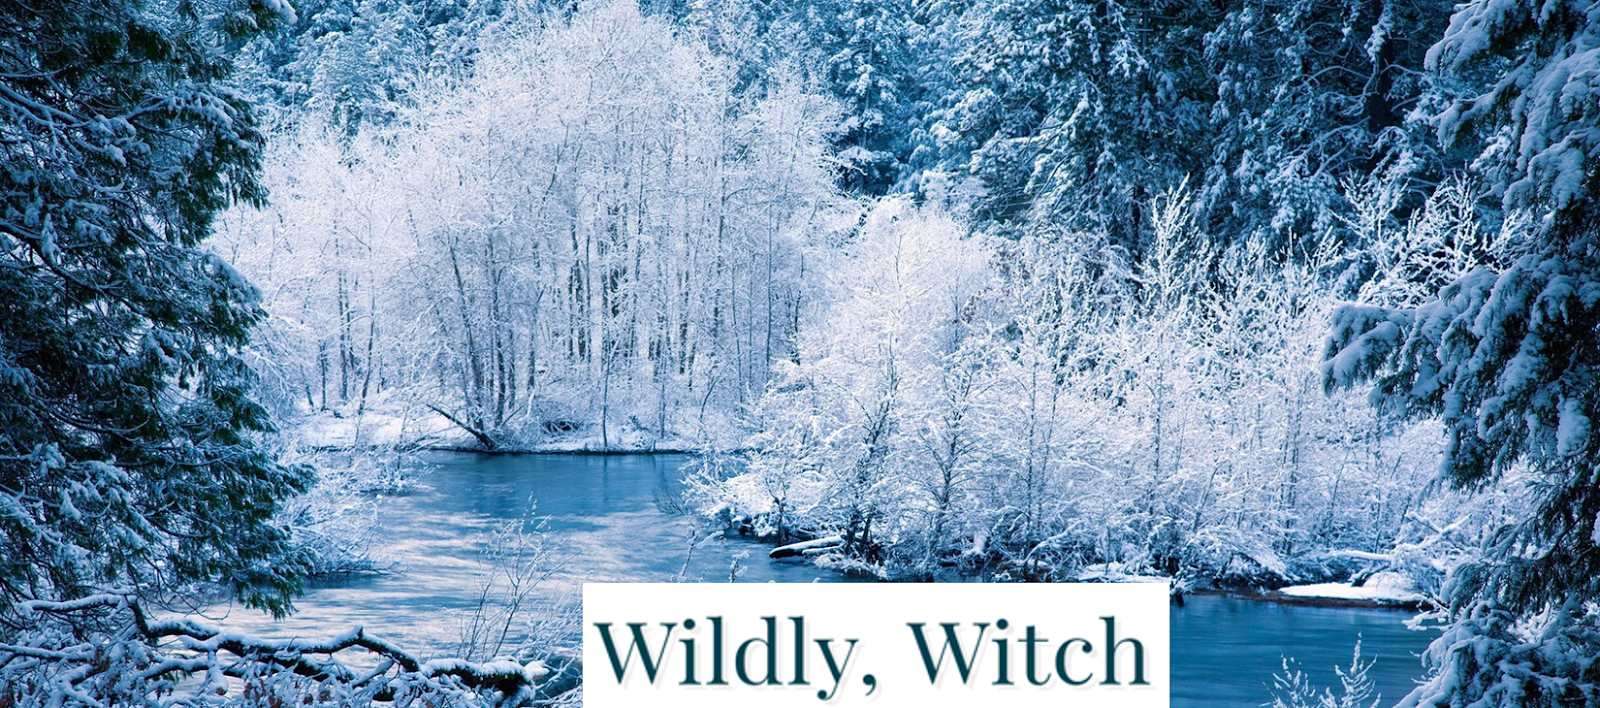 Wildly, Witch